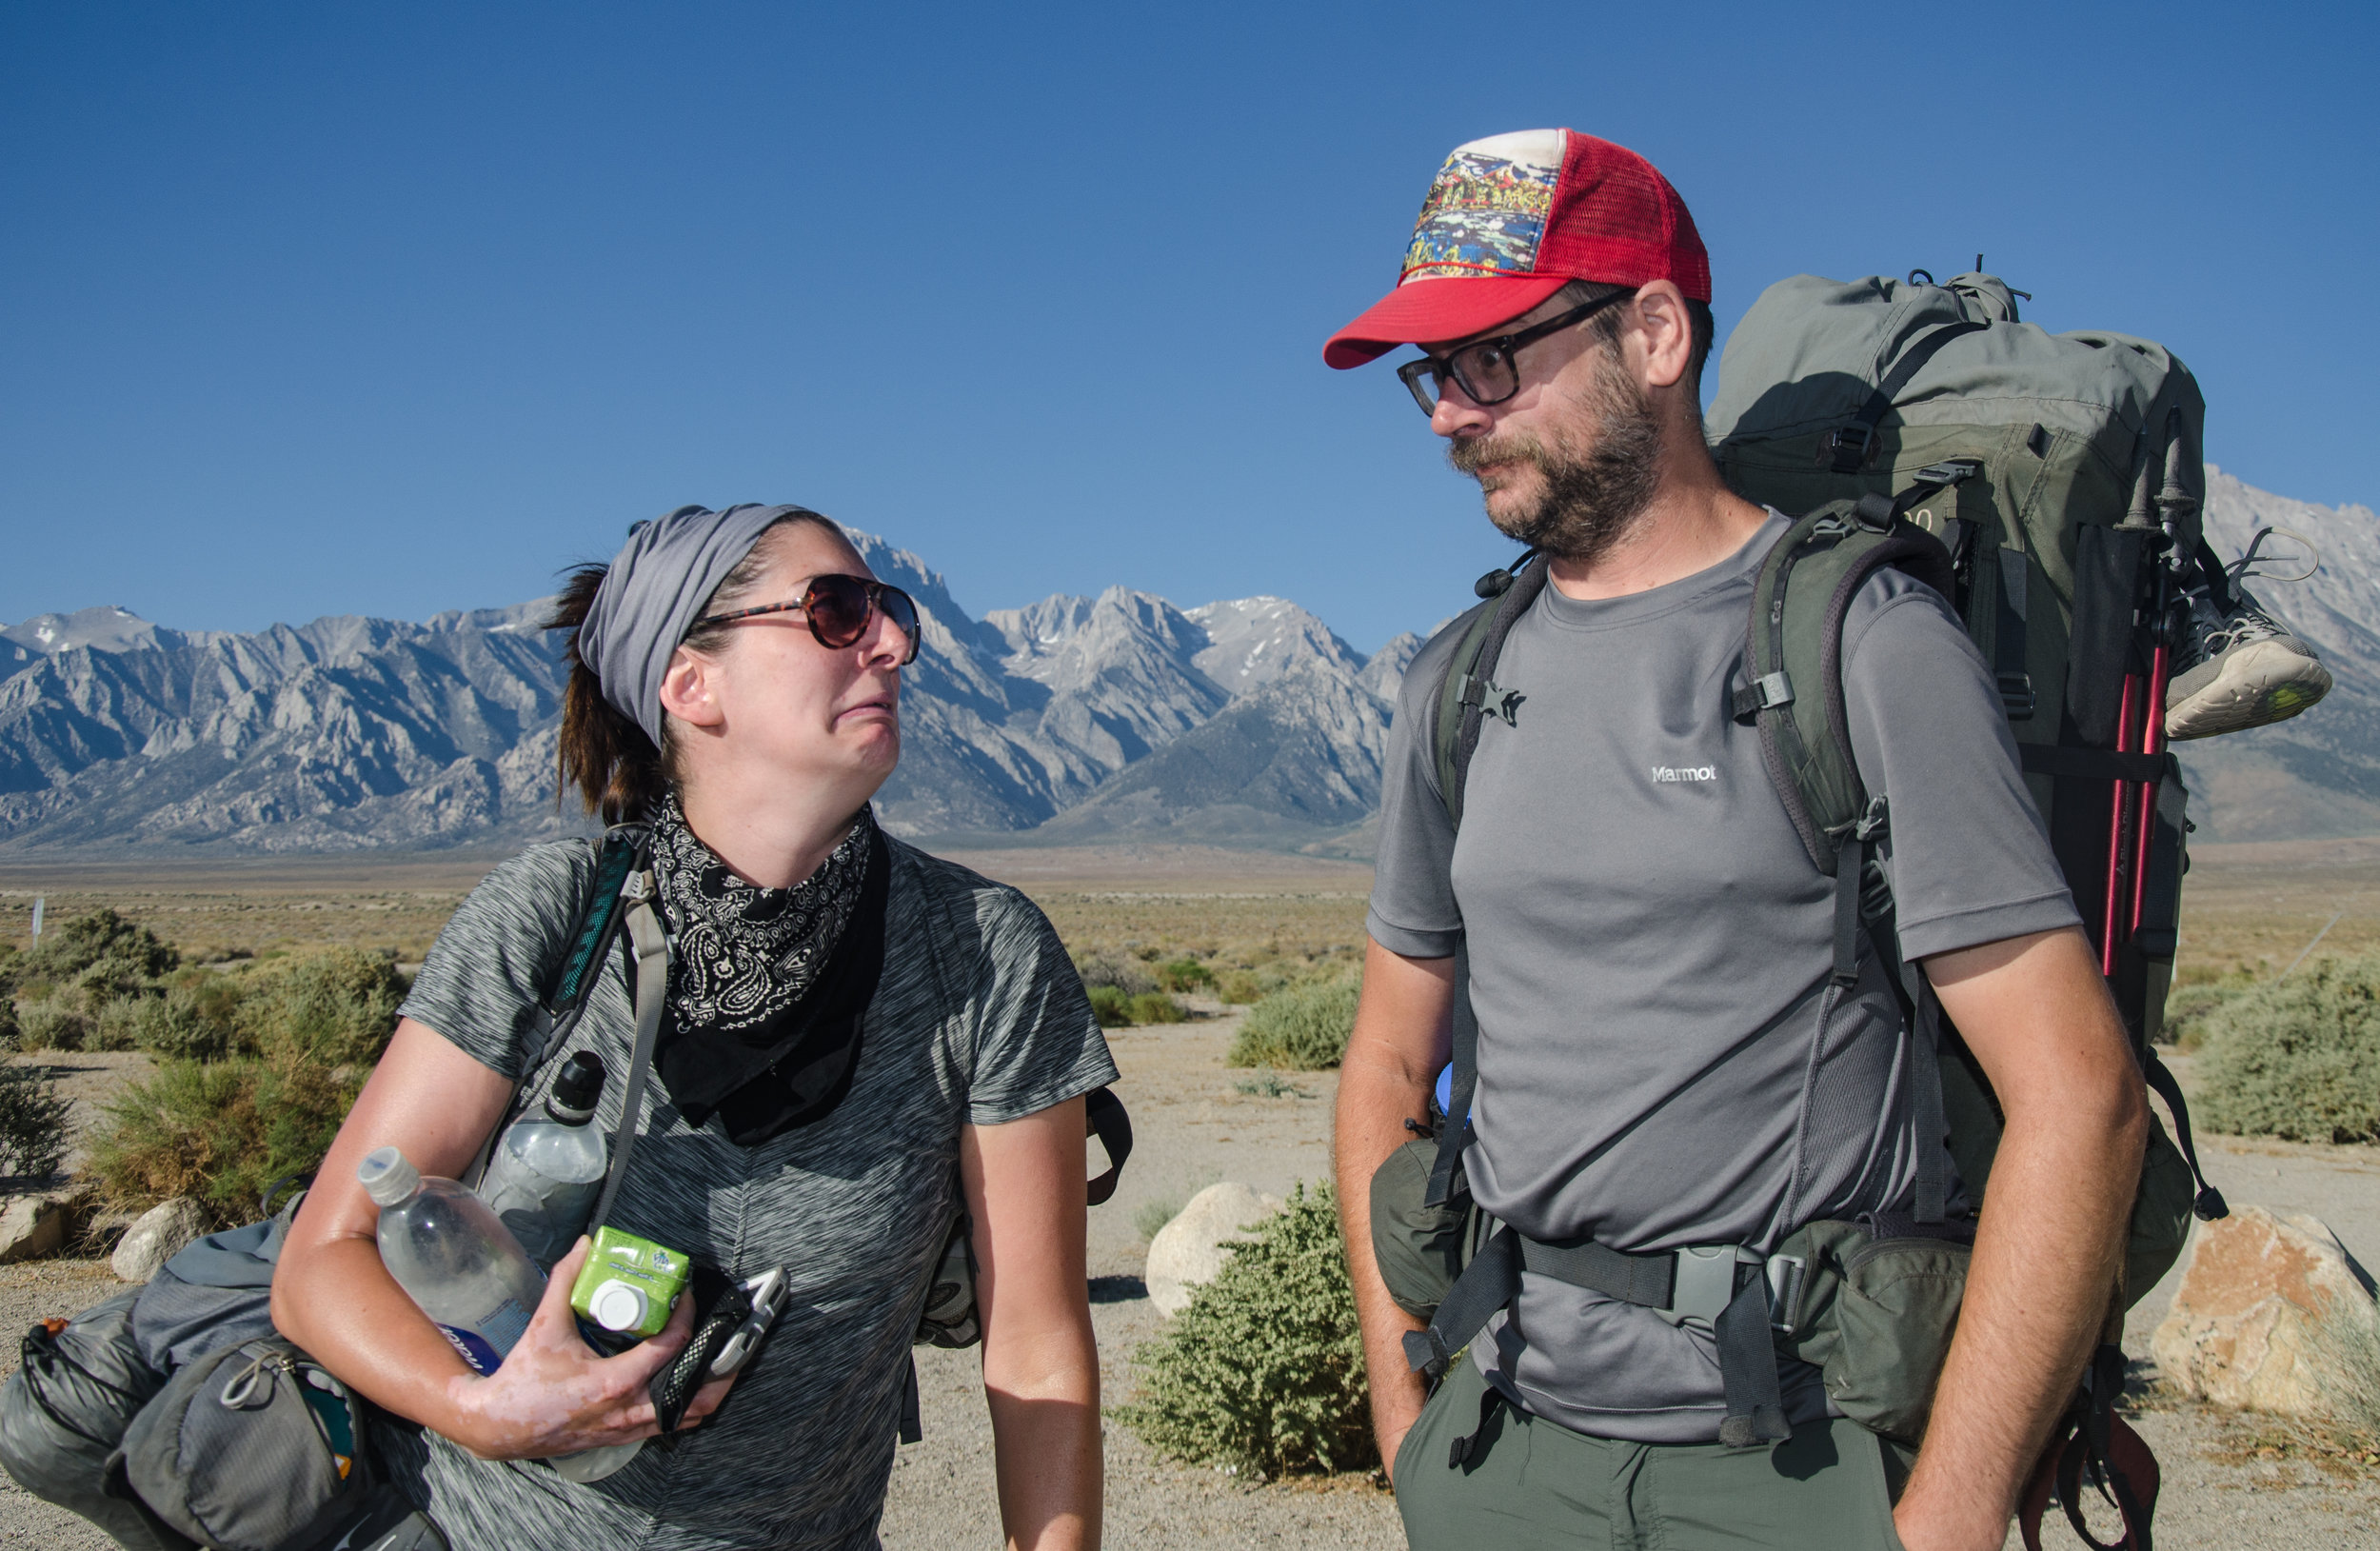 JMT hikers Laura and Wesley